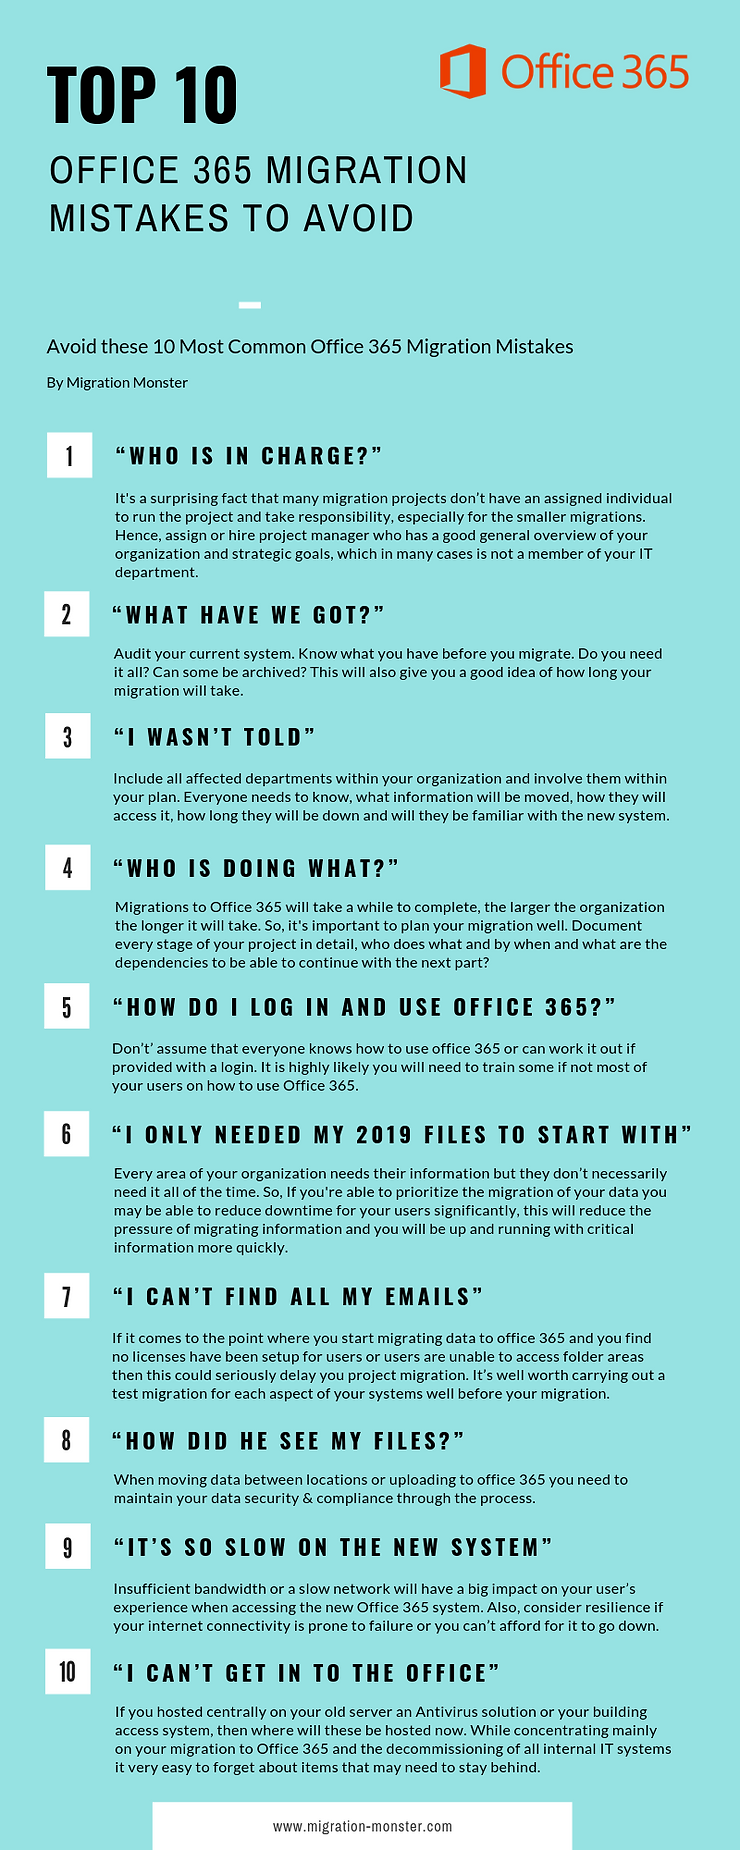 Avoid these 10 Most Common Office 365 Migration Mistakes